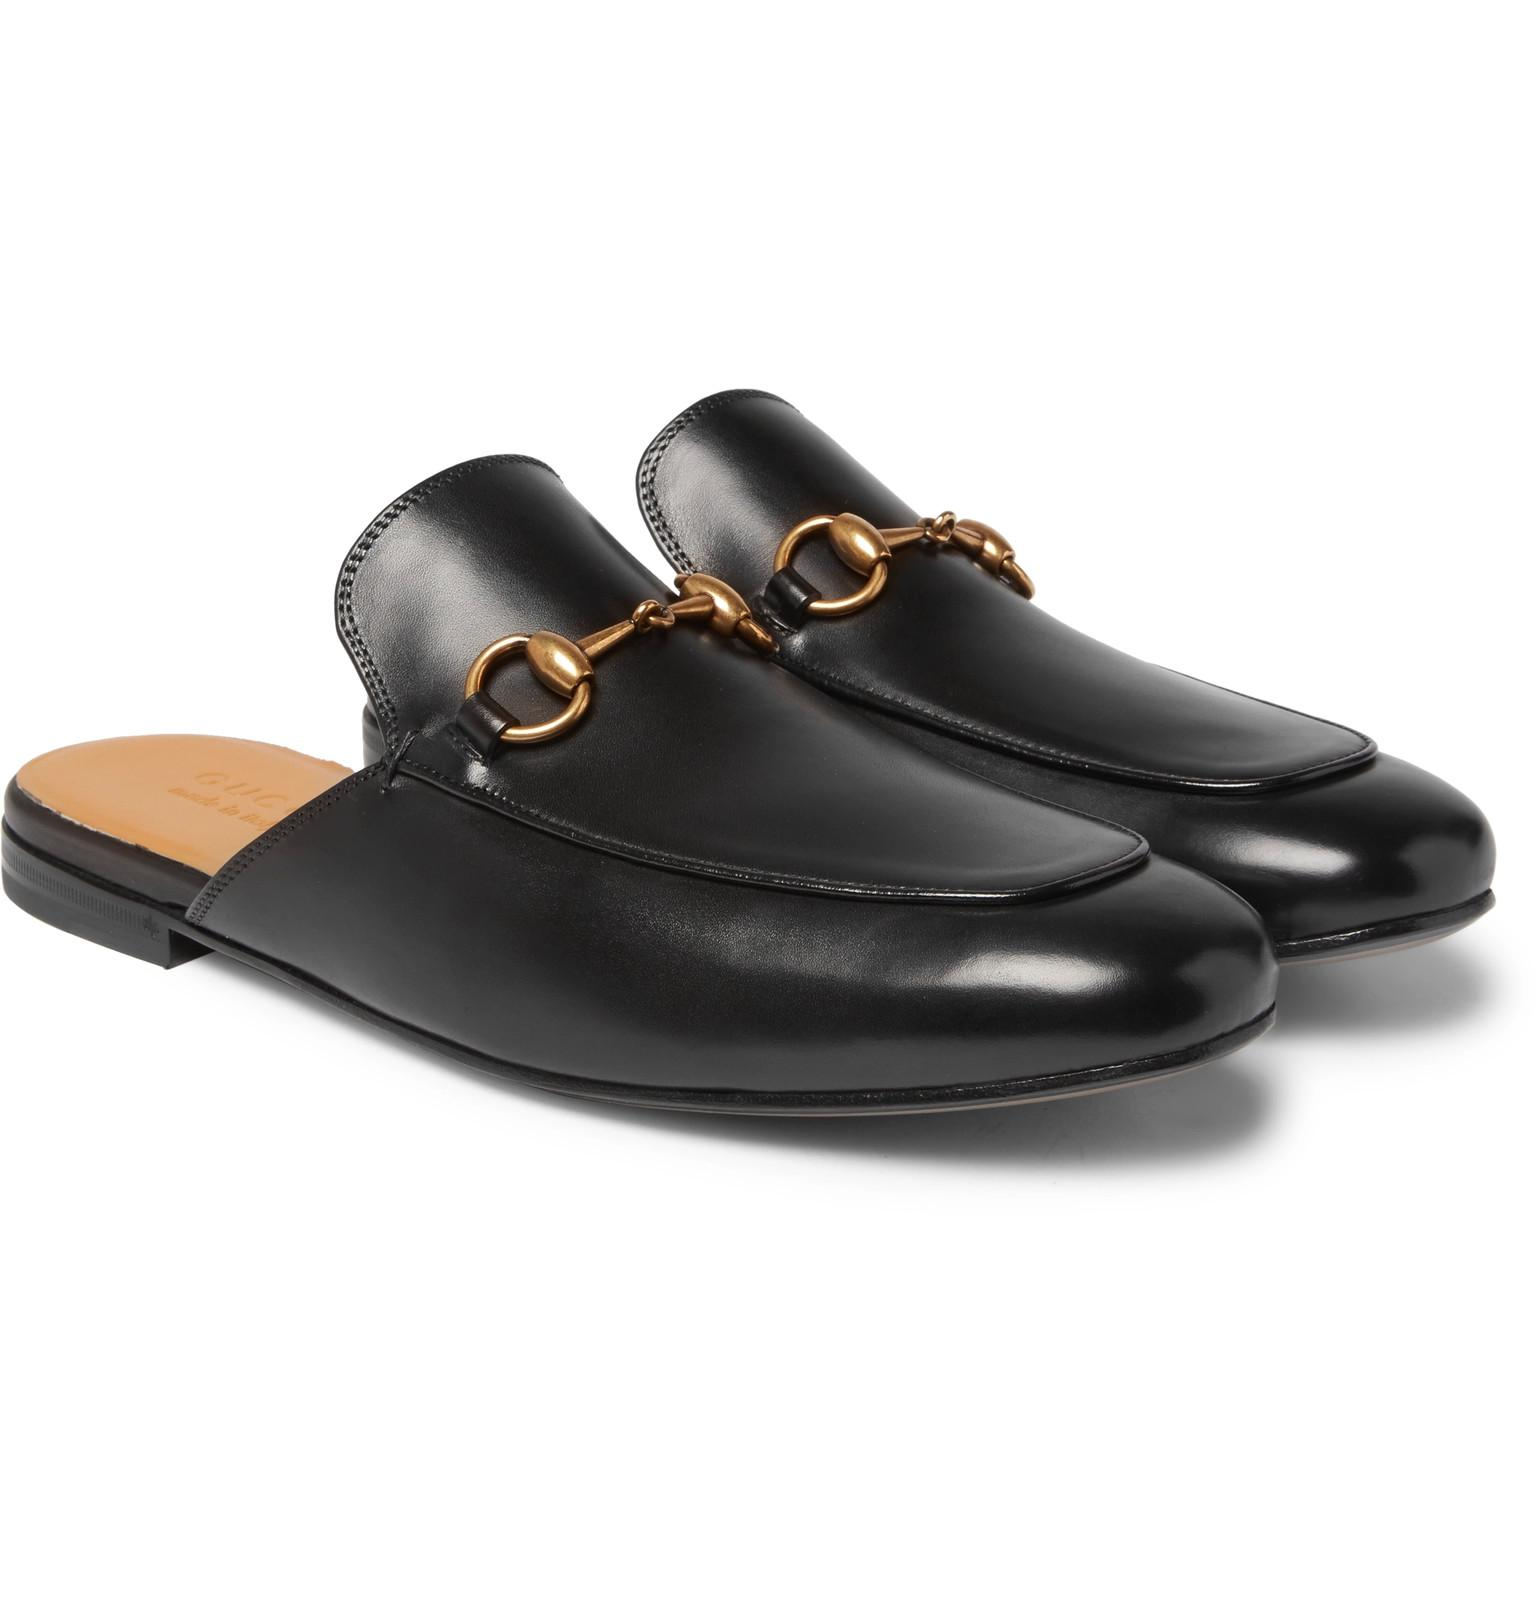 8268133db5d Gucci Horsebit Leather Backless Loafers in Black for Men